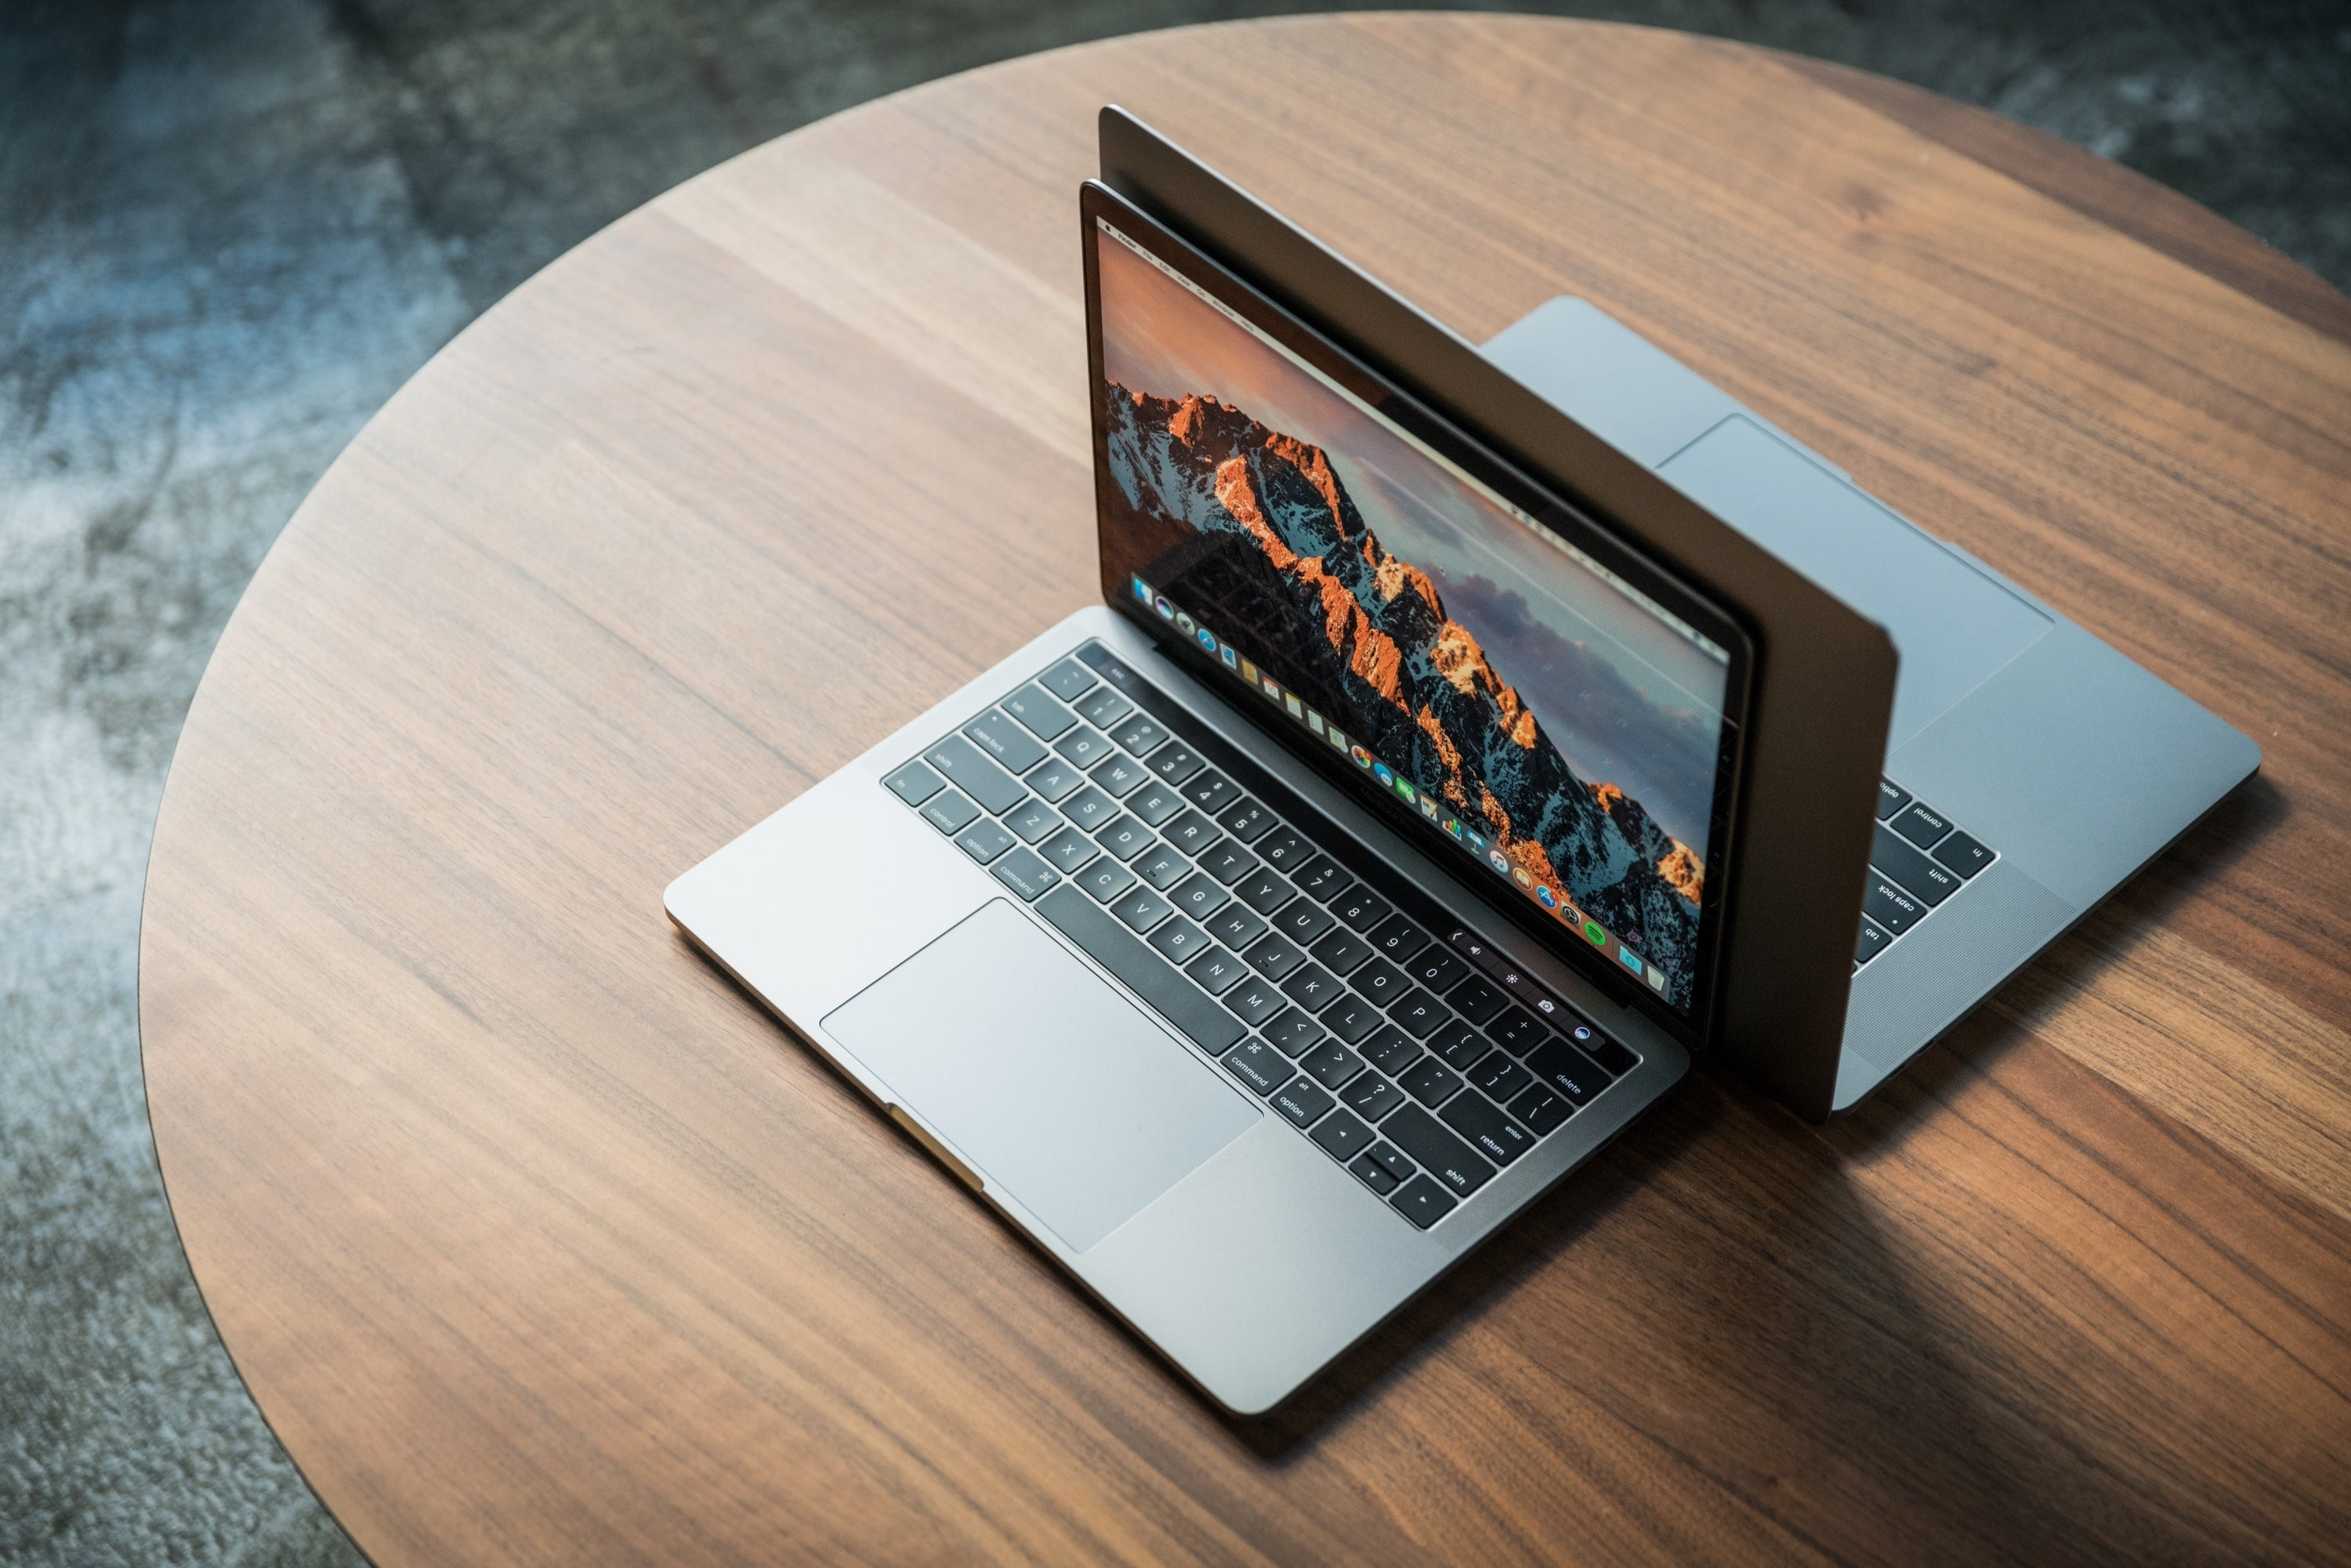 Tested: The truth behind the MacBook Pro's 'terrible